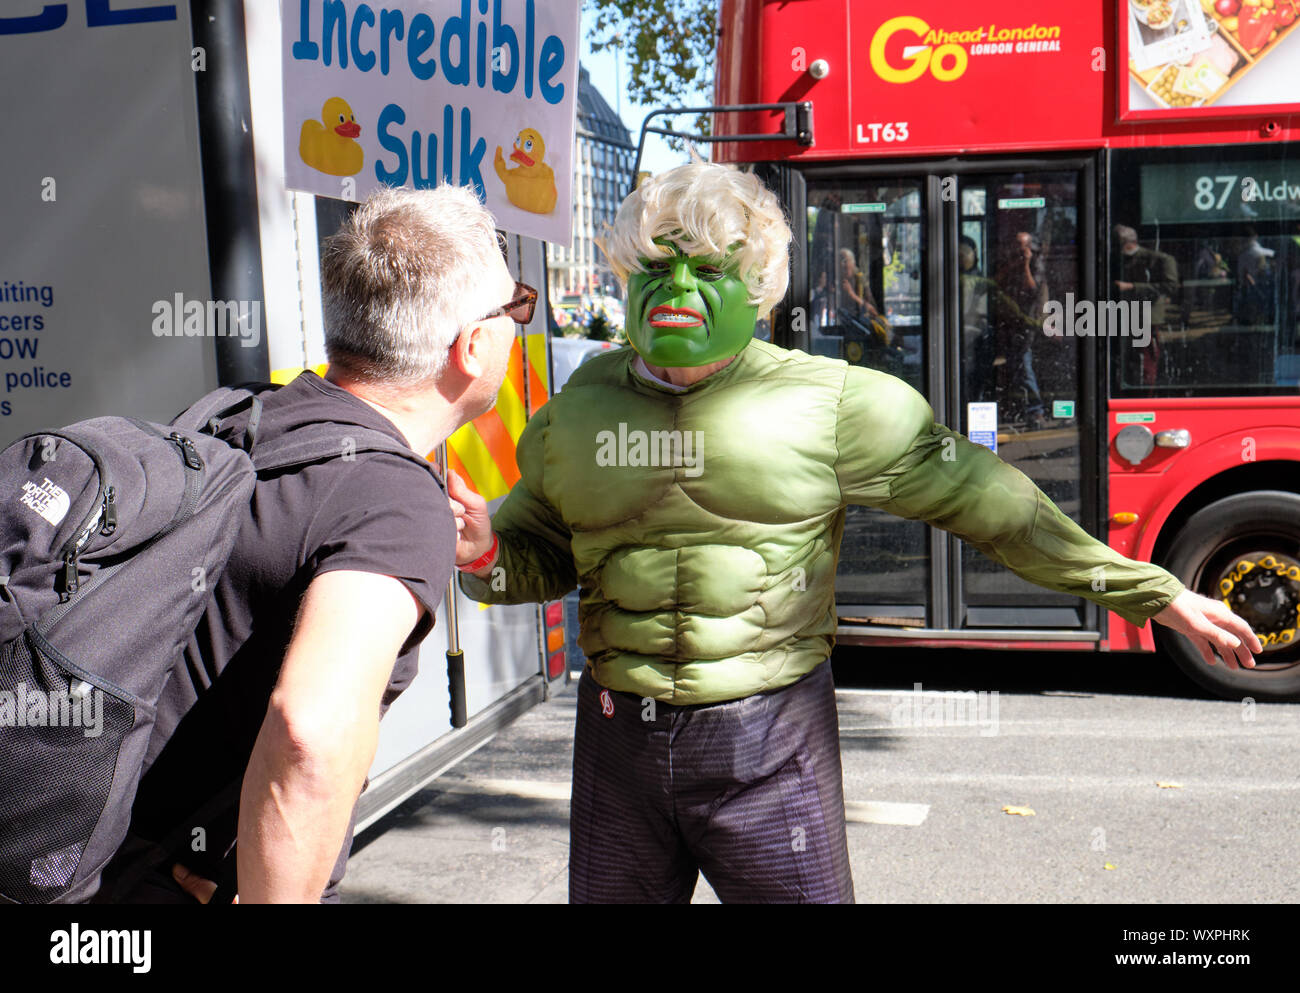 pro-remain-supporters-in-hulk-costume-with-incredible-sulk-sign-in-front-on-supreme-court-in-london-confronted-by-a-leave-supporter-WXPHRK.jpg